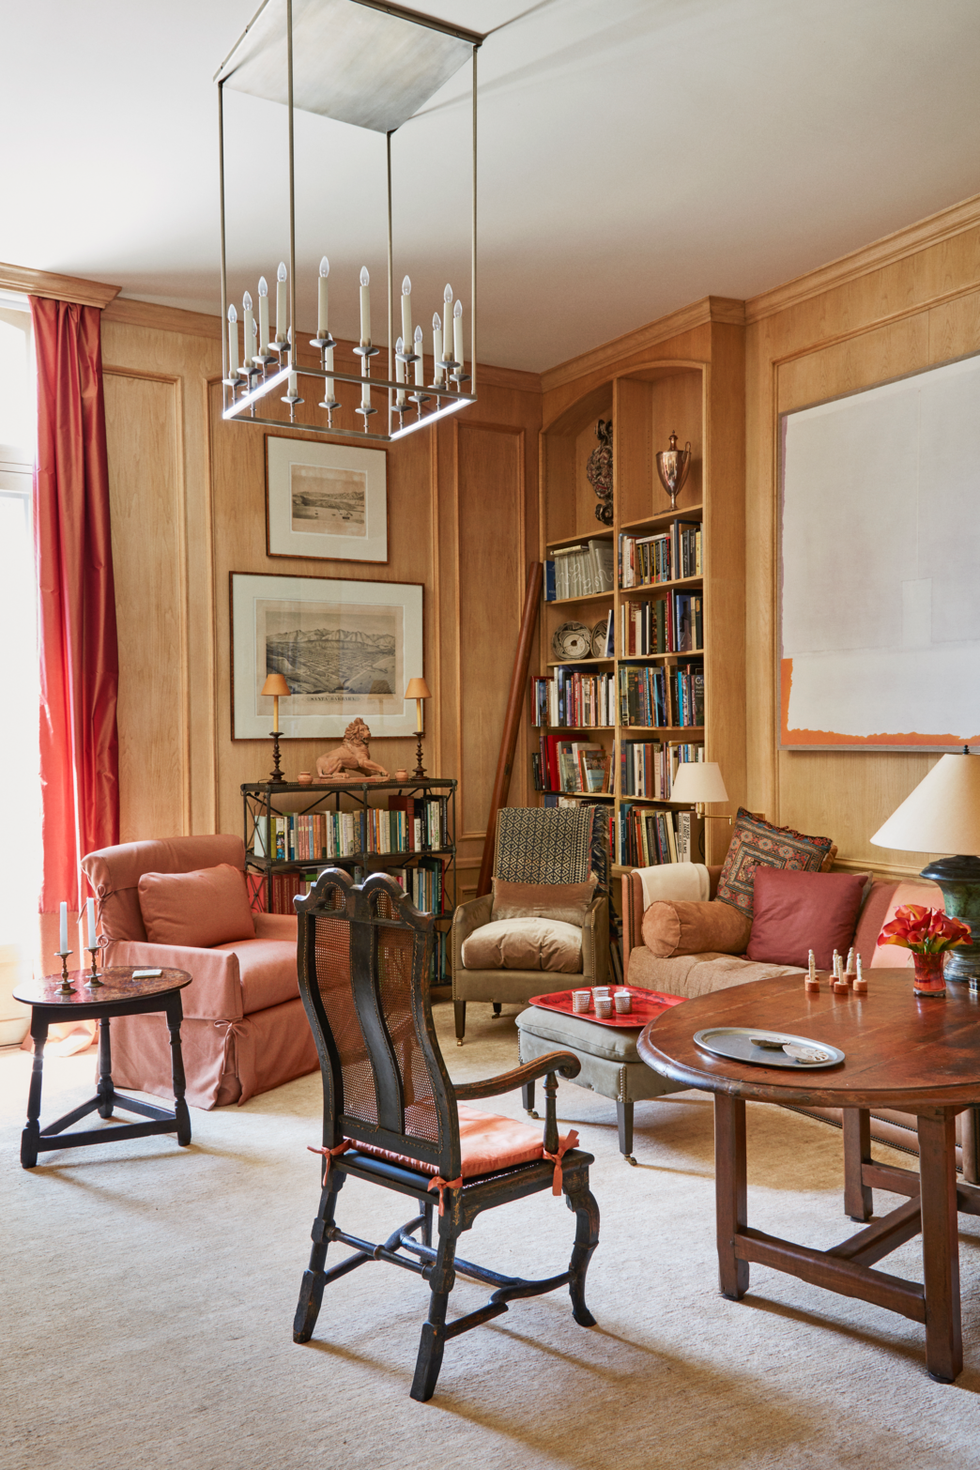 Dining Room Library Ideas: 15 Stylish Home Libraries You'll Want To Cozy Into